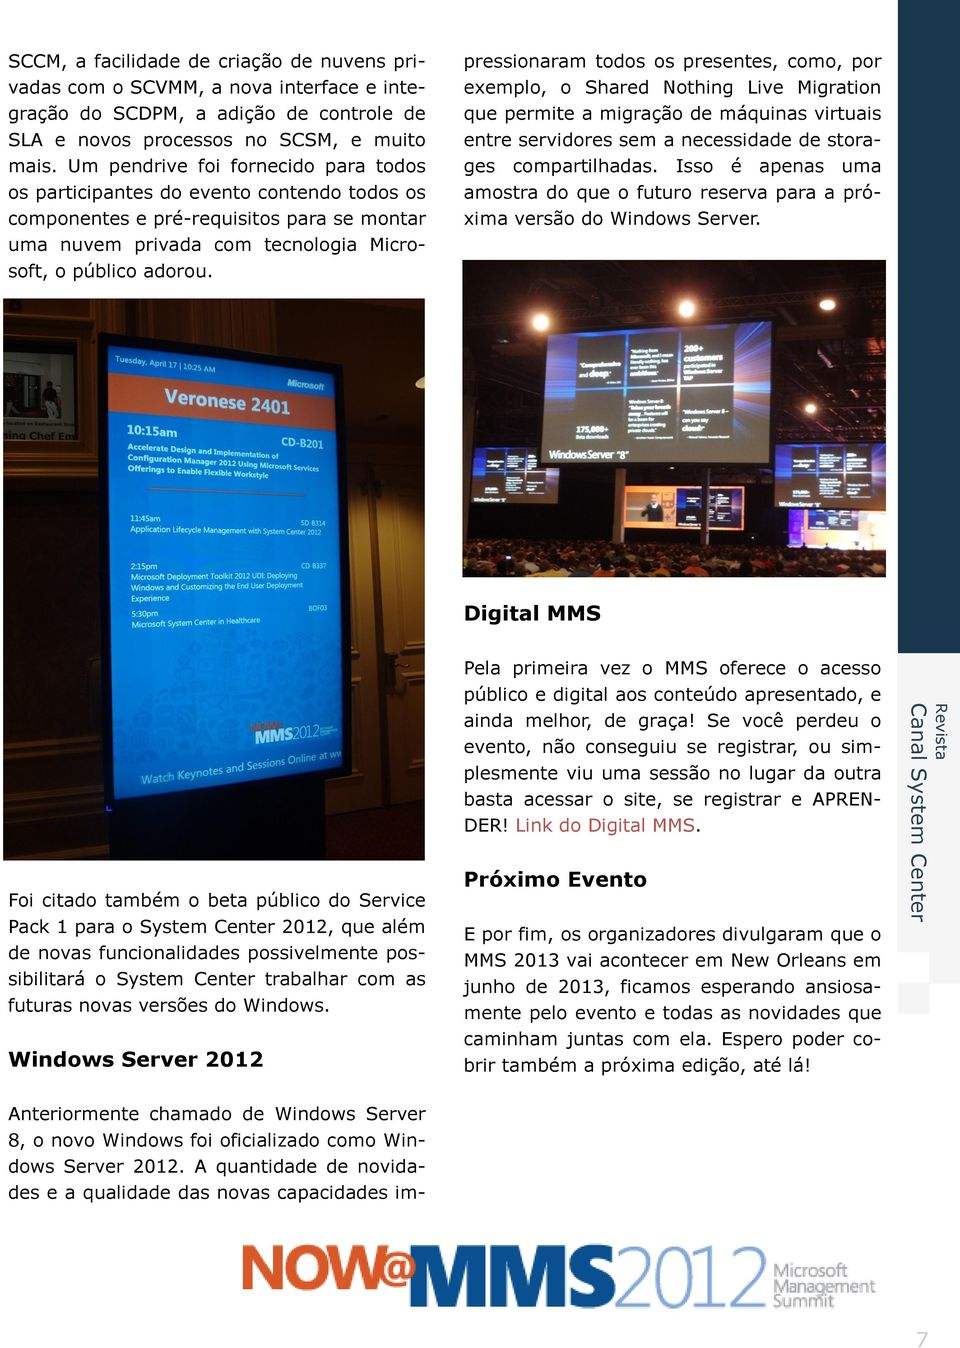 Anteriormente chamado de Windows Server 8, o novo Windows foi oficializado como Windows Server 2012.